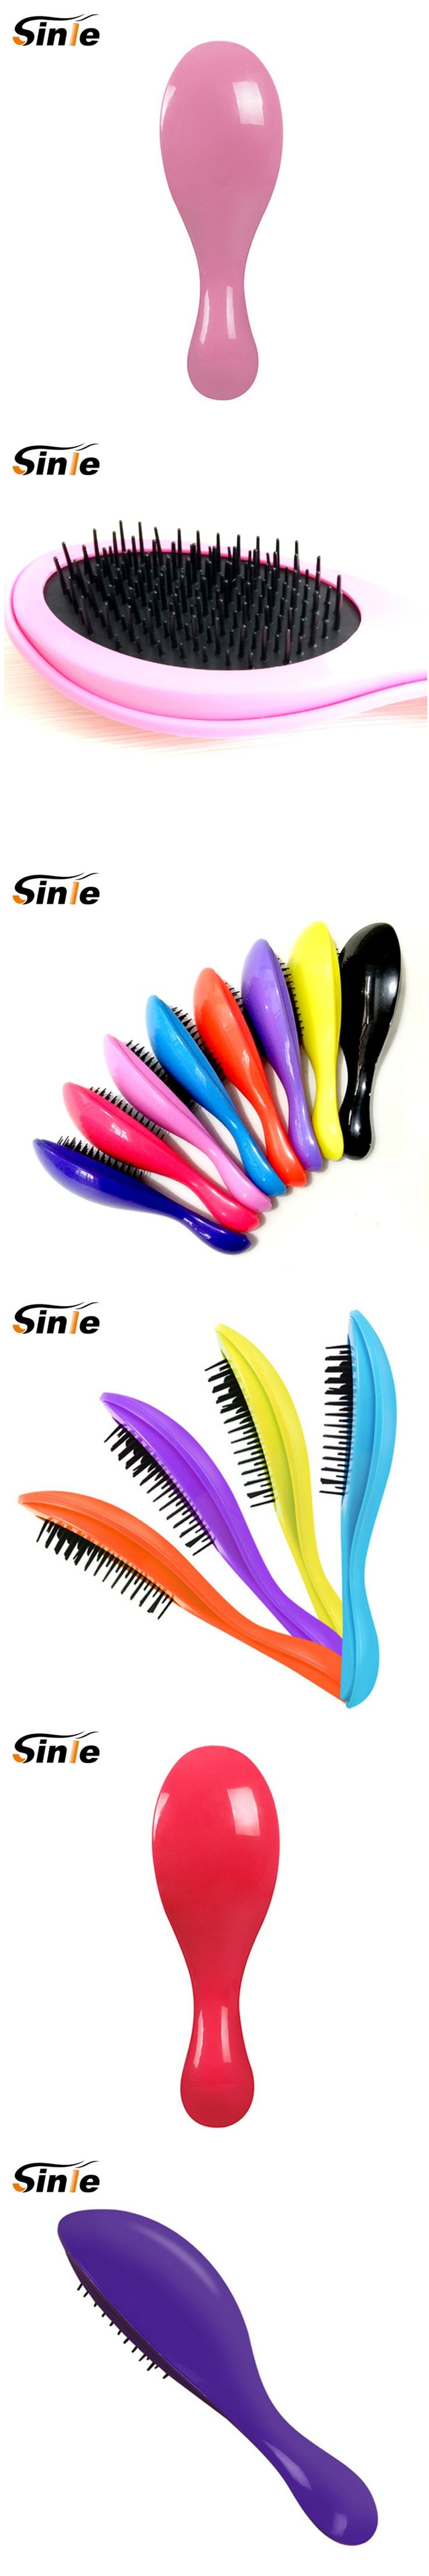 Creative spoon style of hair brush magic Handle Tangle Detangling Comb Shower Hair Brush Salon Styling Tamer Tool Hot Selling